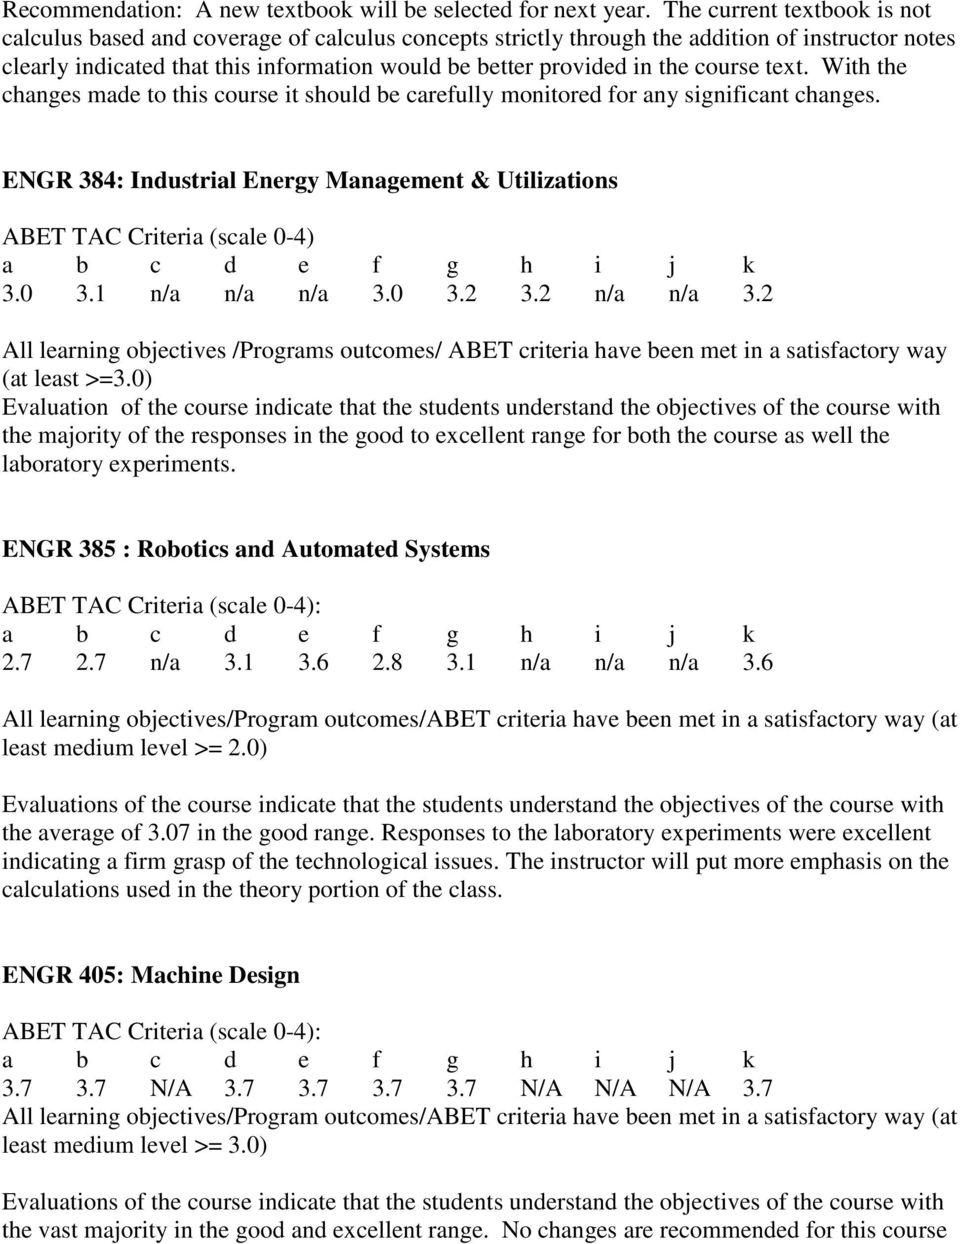 course text. With the changes made to this course it should be carefully monitored for any significant changes. ENGR 384: Industrial Energy Management & Utilizations ABET TAC Criteria (scale 0-4) 3.